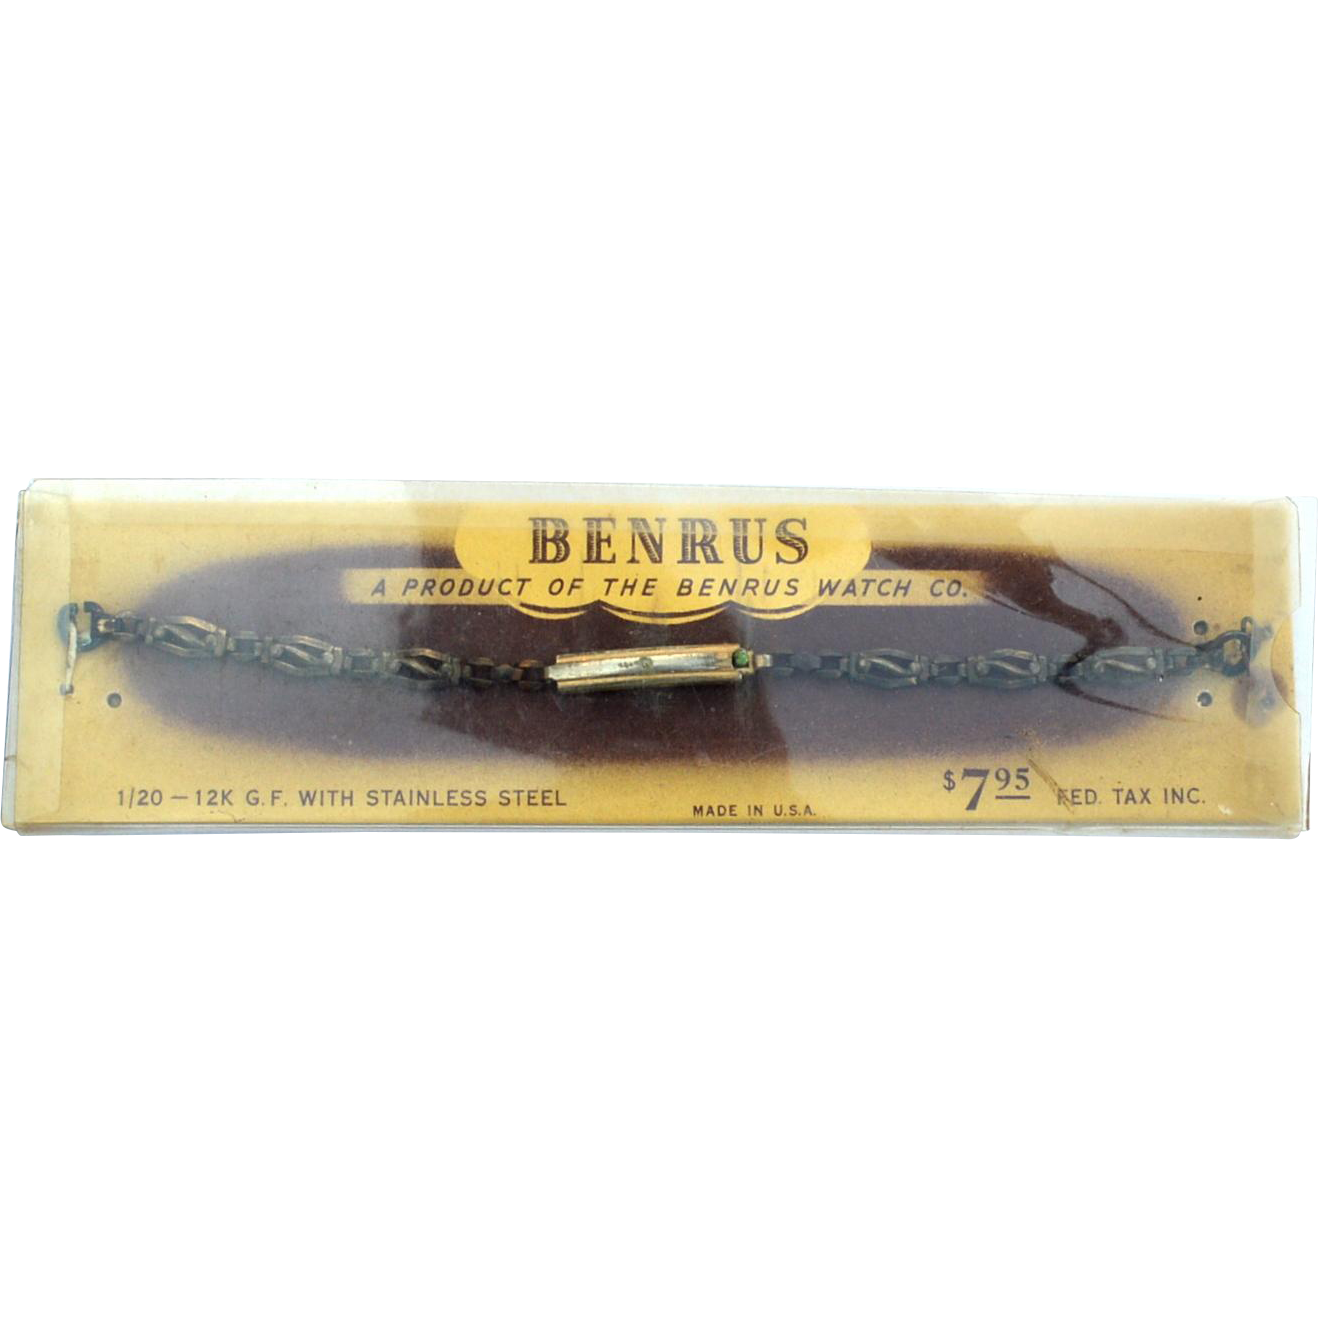 Early 12K Gold Filled BENRUS Watch Band, Original Packaging